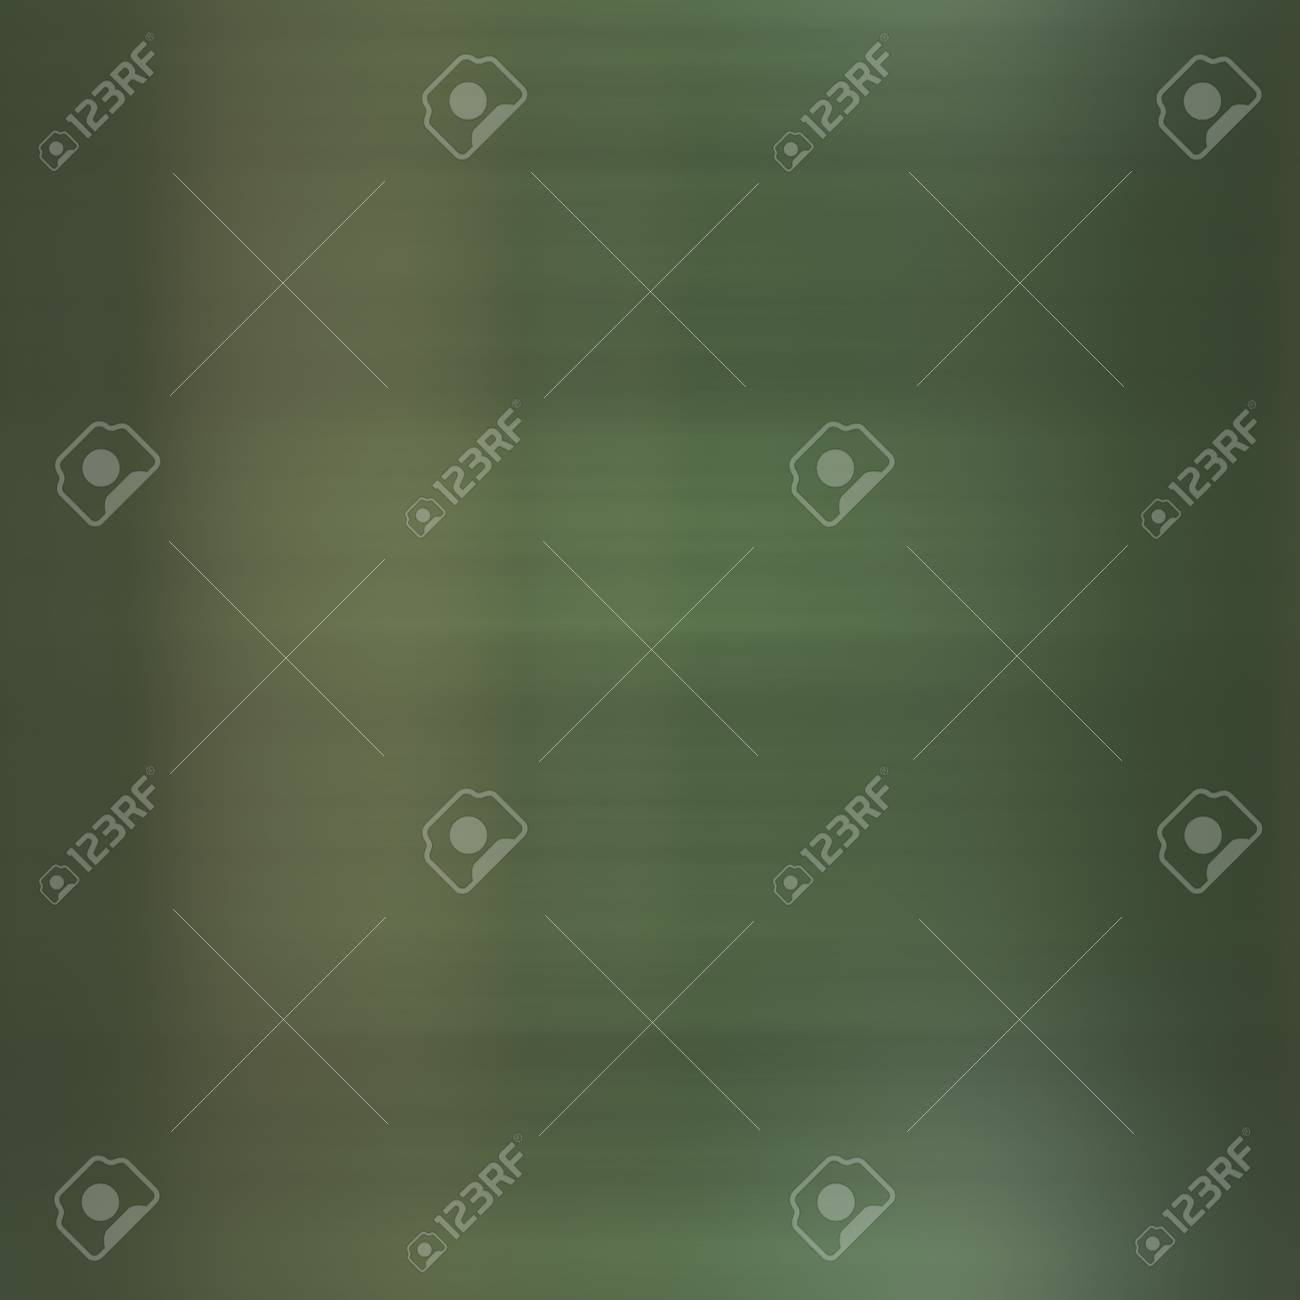 Brushed smooth glossy metal surface texture background illustration Stock Photo - 3414000